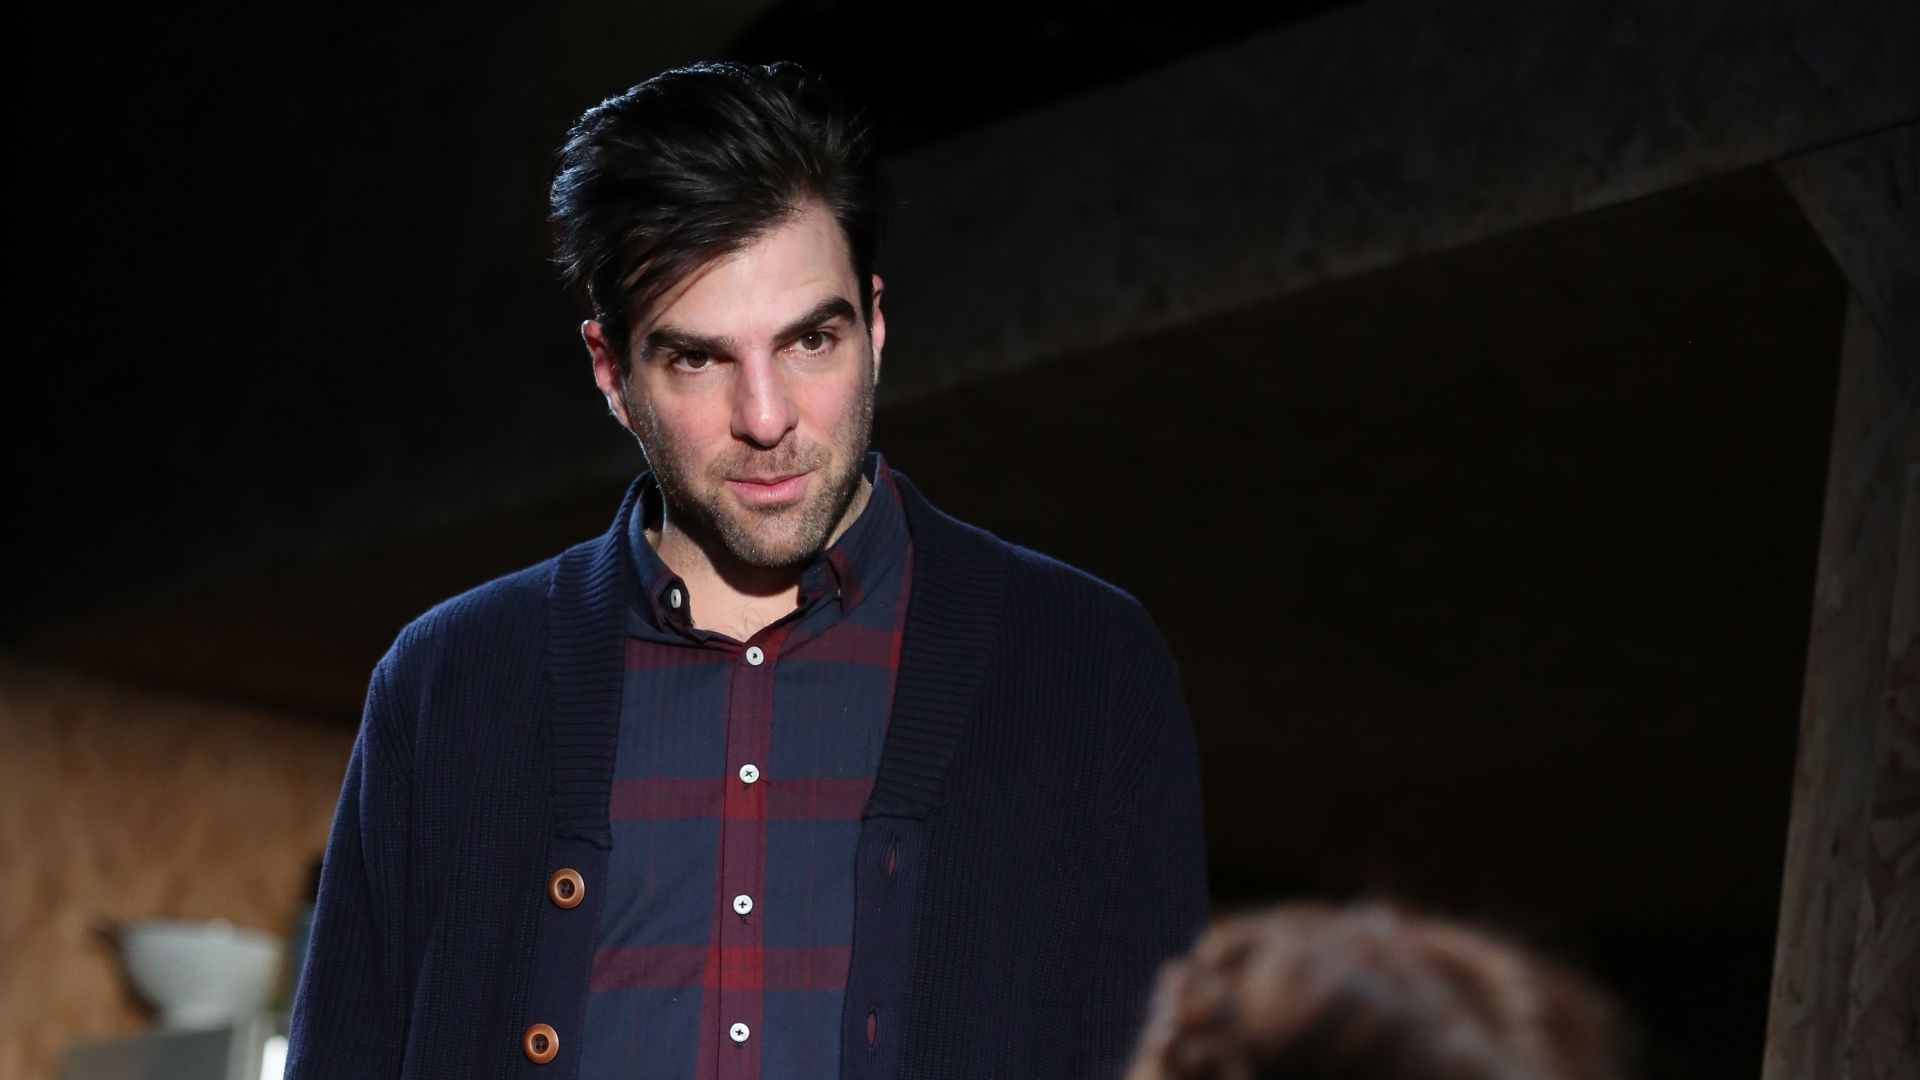 Zachary quinto off broadway